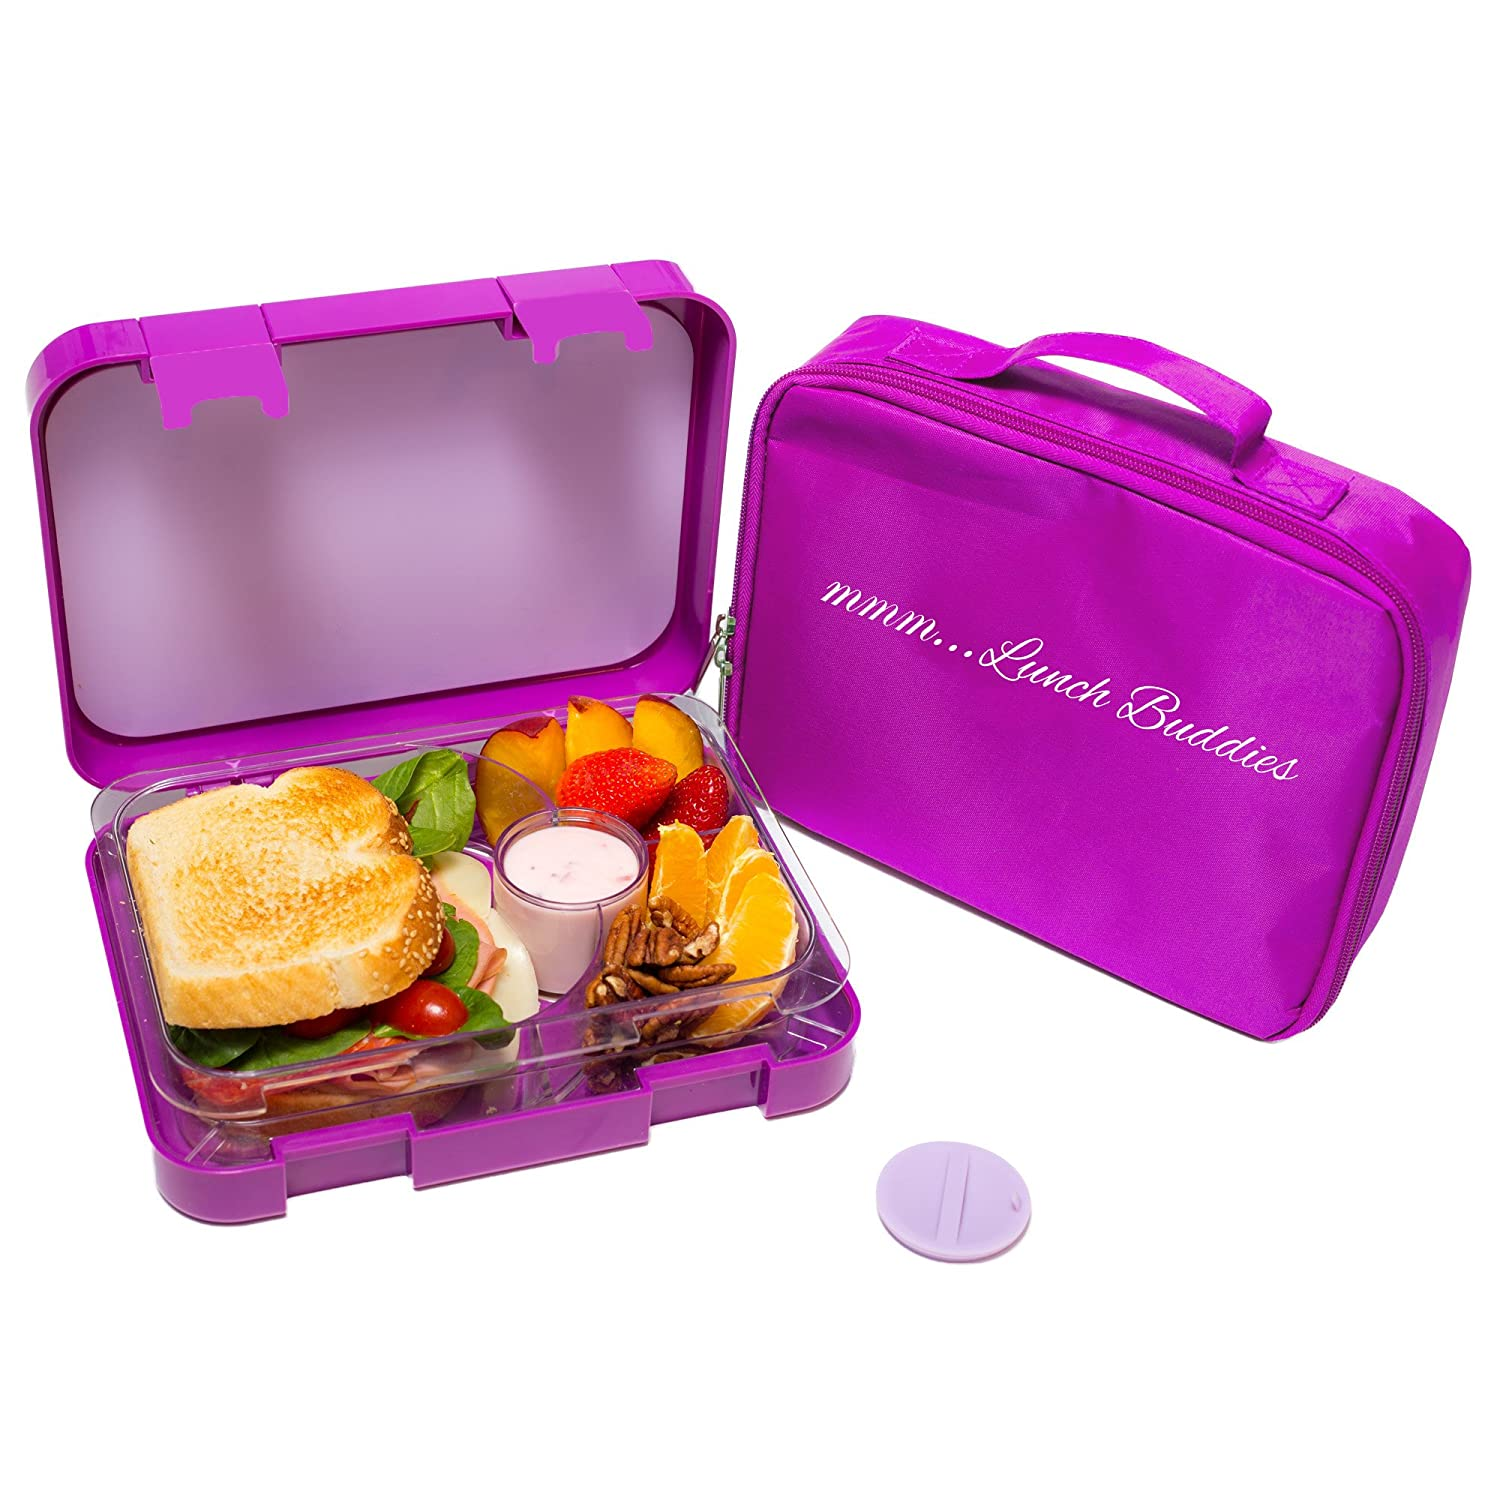 top 10 best lunch boxes for adults adults lunch boxes reviews. Black Bedroom Furniture Sets. Home Design Ideas